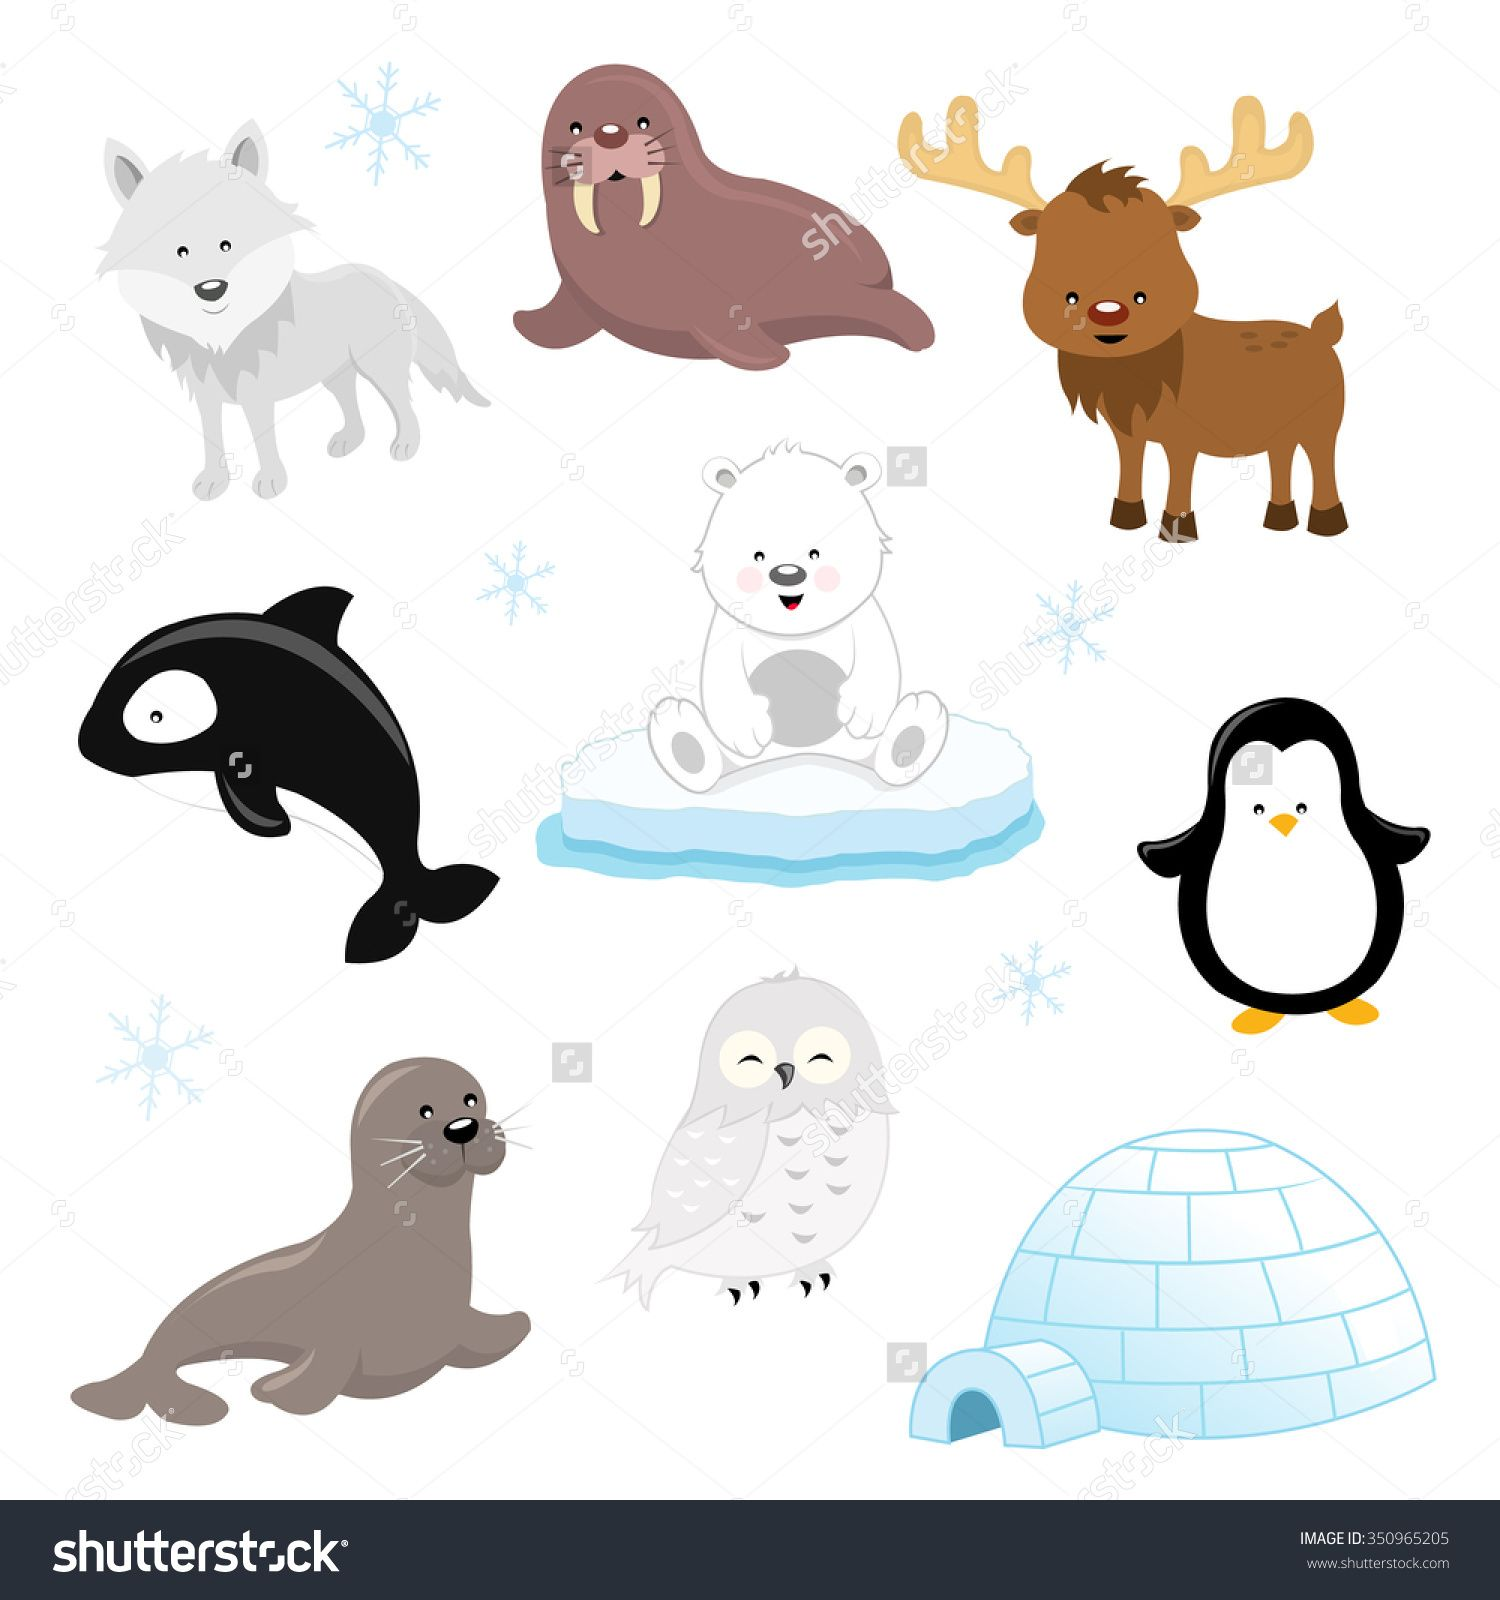 Image result for arctic animal clipart Arctic animals